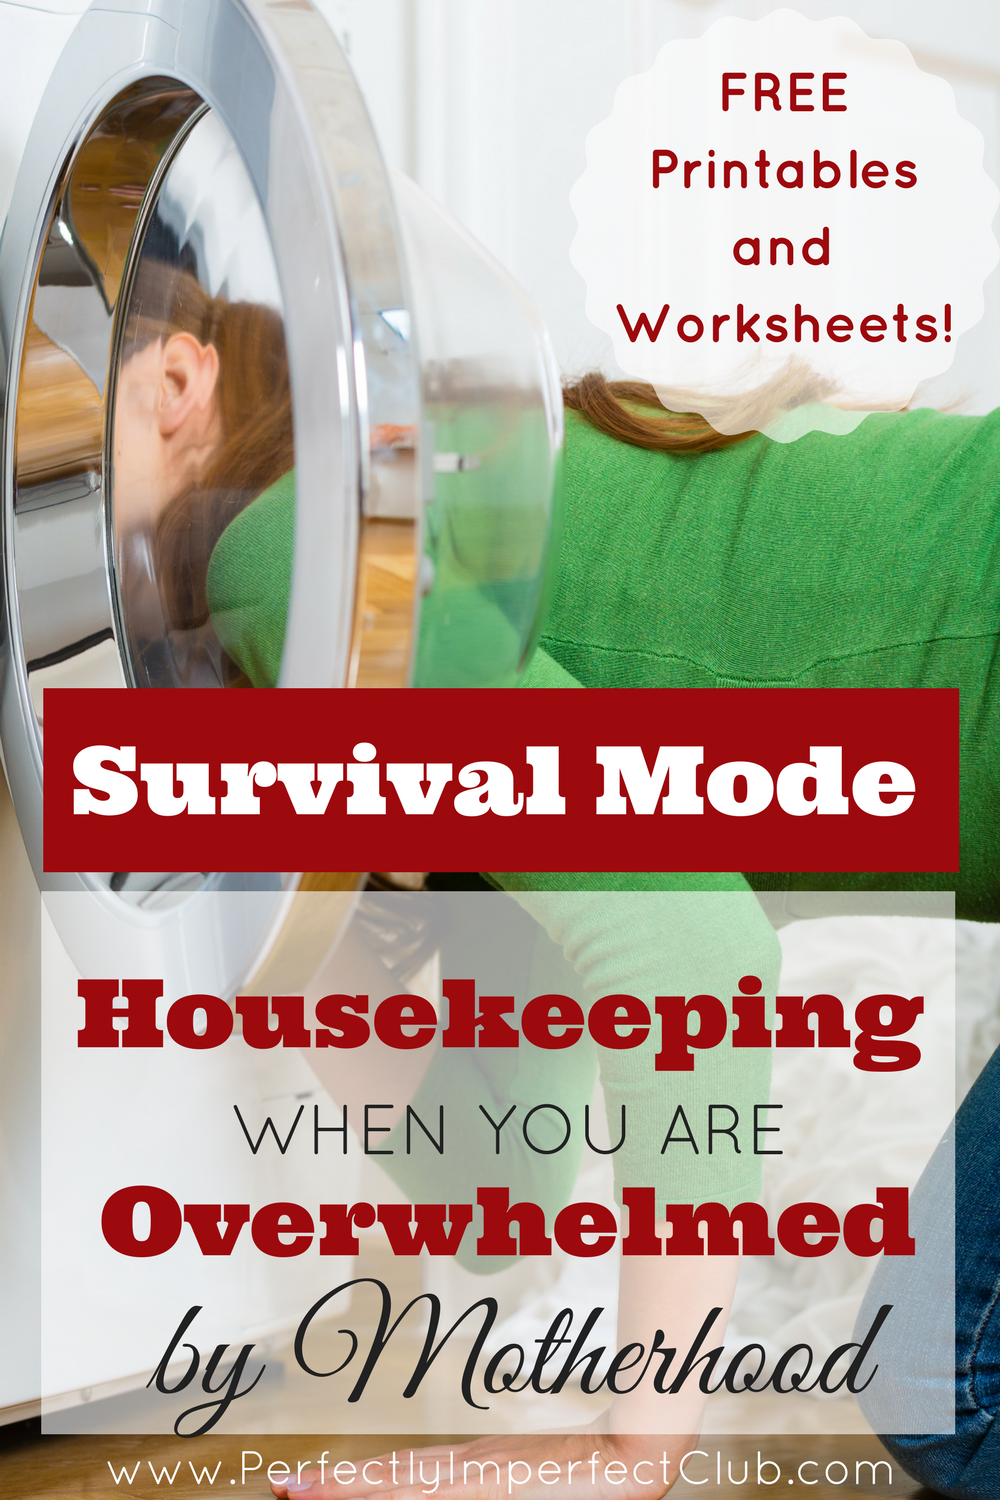 This Mom of 9 explains how she kept housekeeping under control when all of her children were young. FREE printables and worksheets!